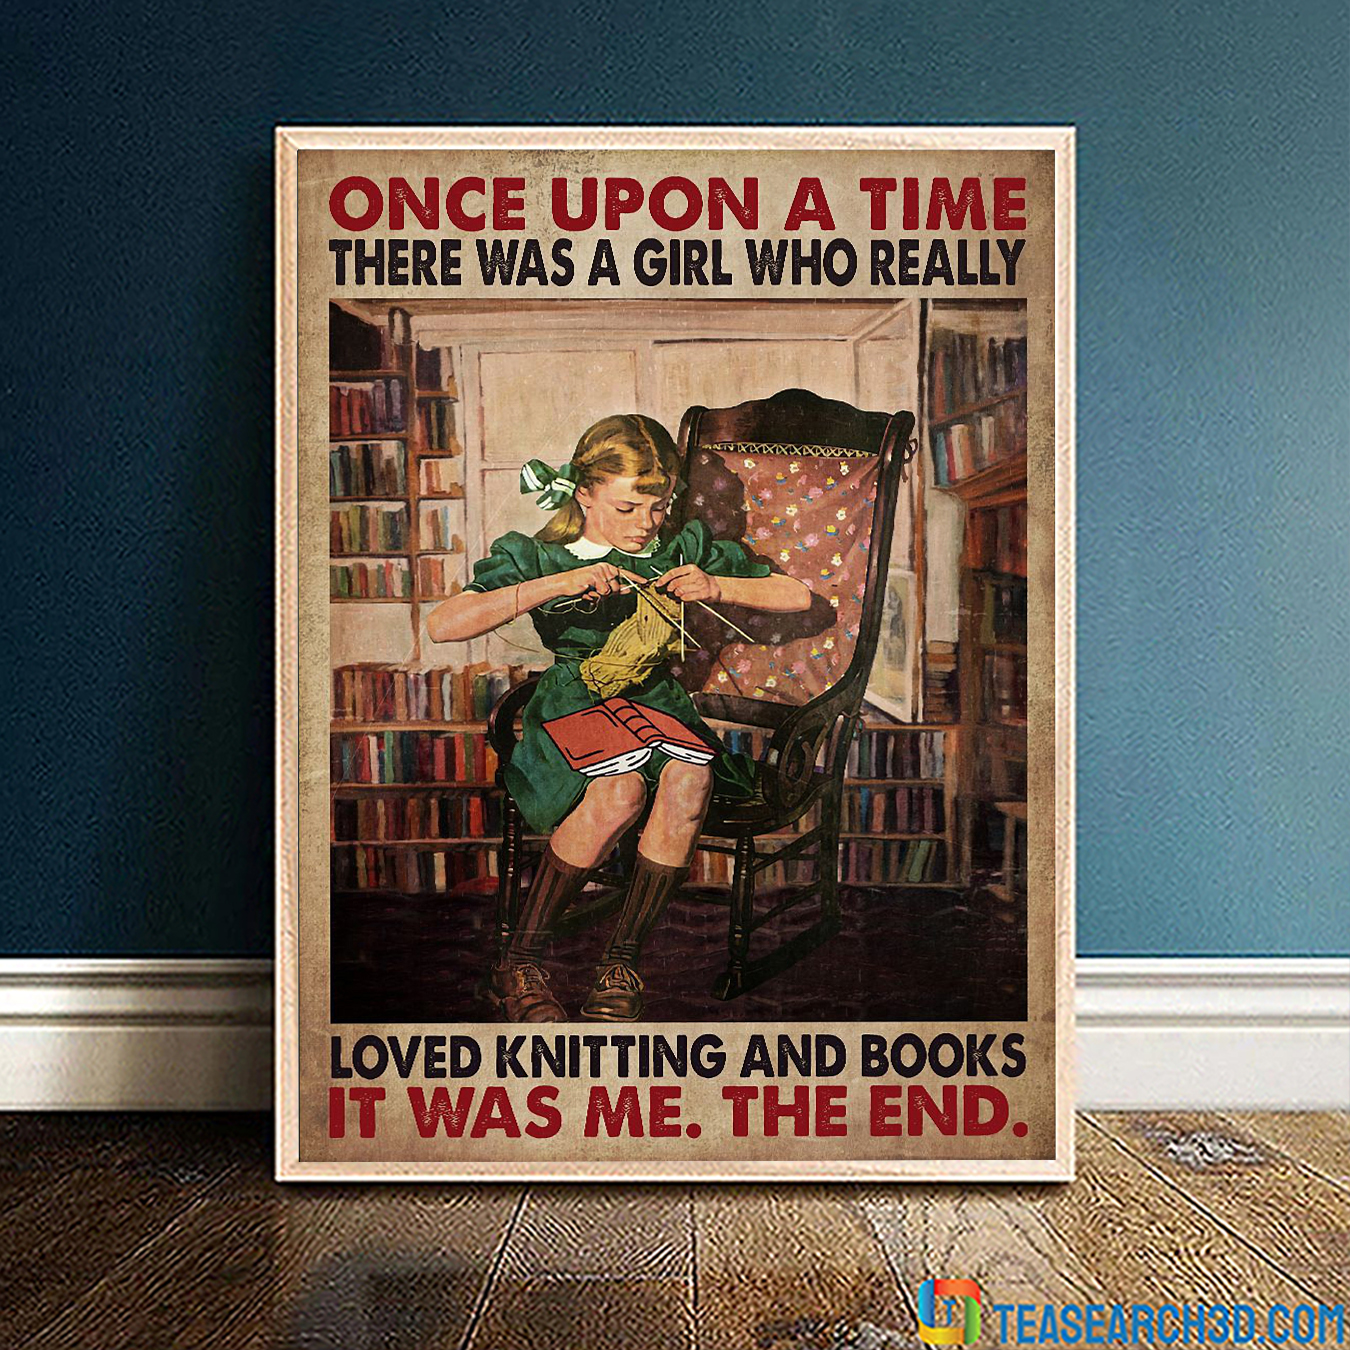 Once upon a time there was a girl who really loved knitting and books poster A1